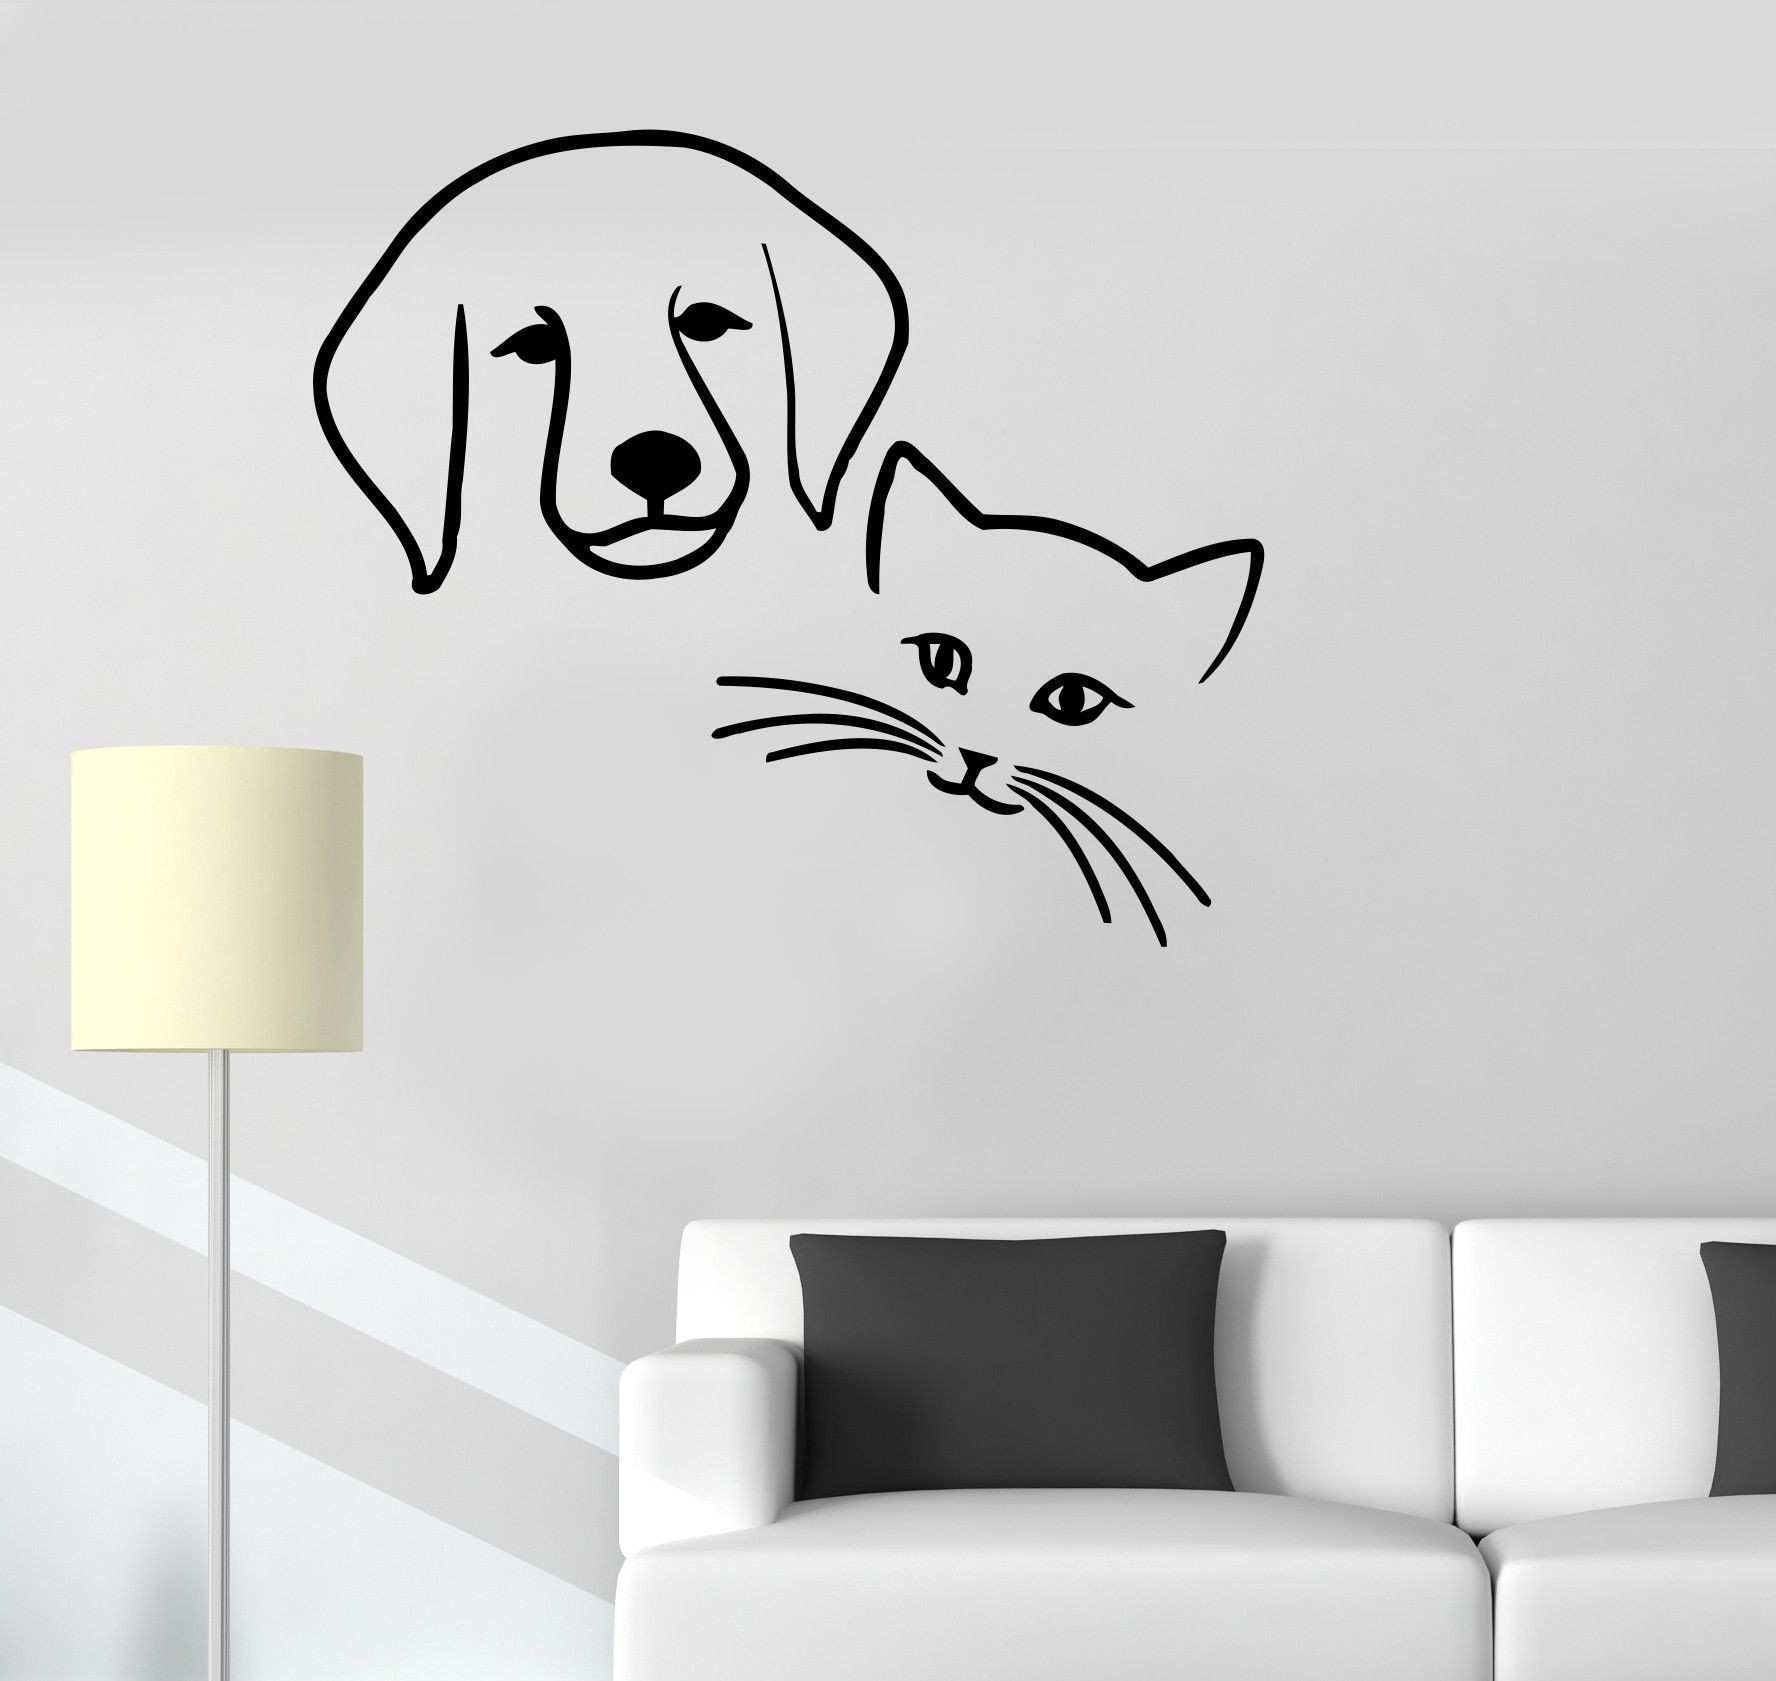 Vinyl Decal Dog Cat Pets Animal Baby Room Kids Veterinary Wall